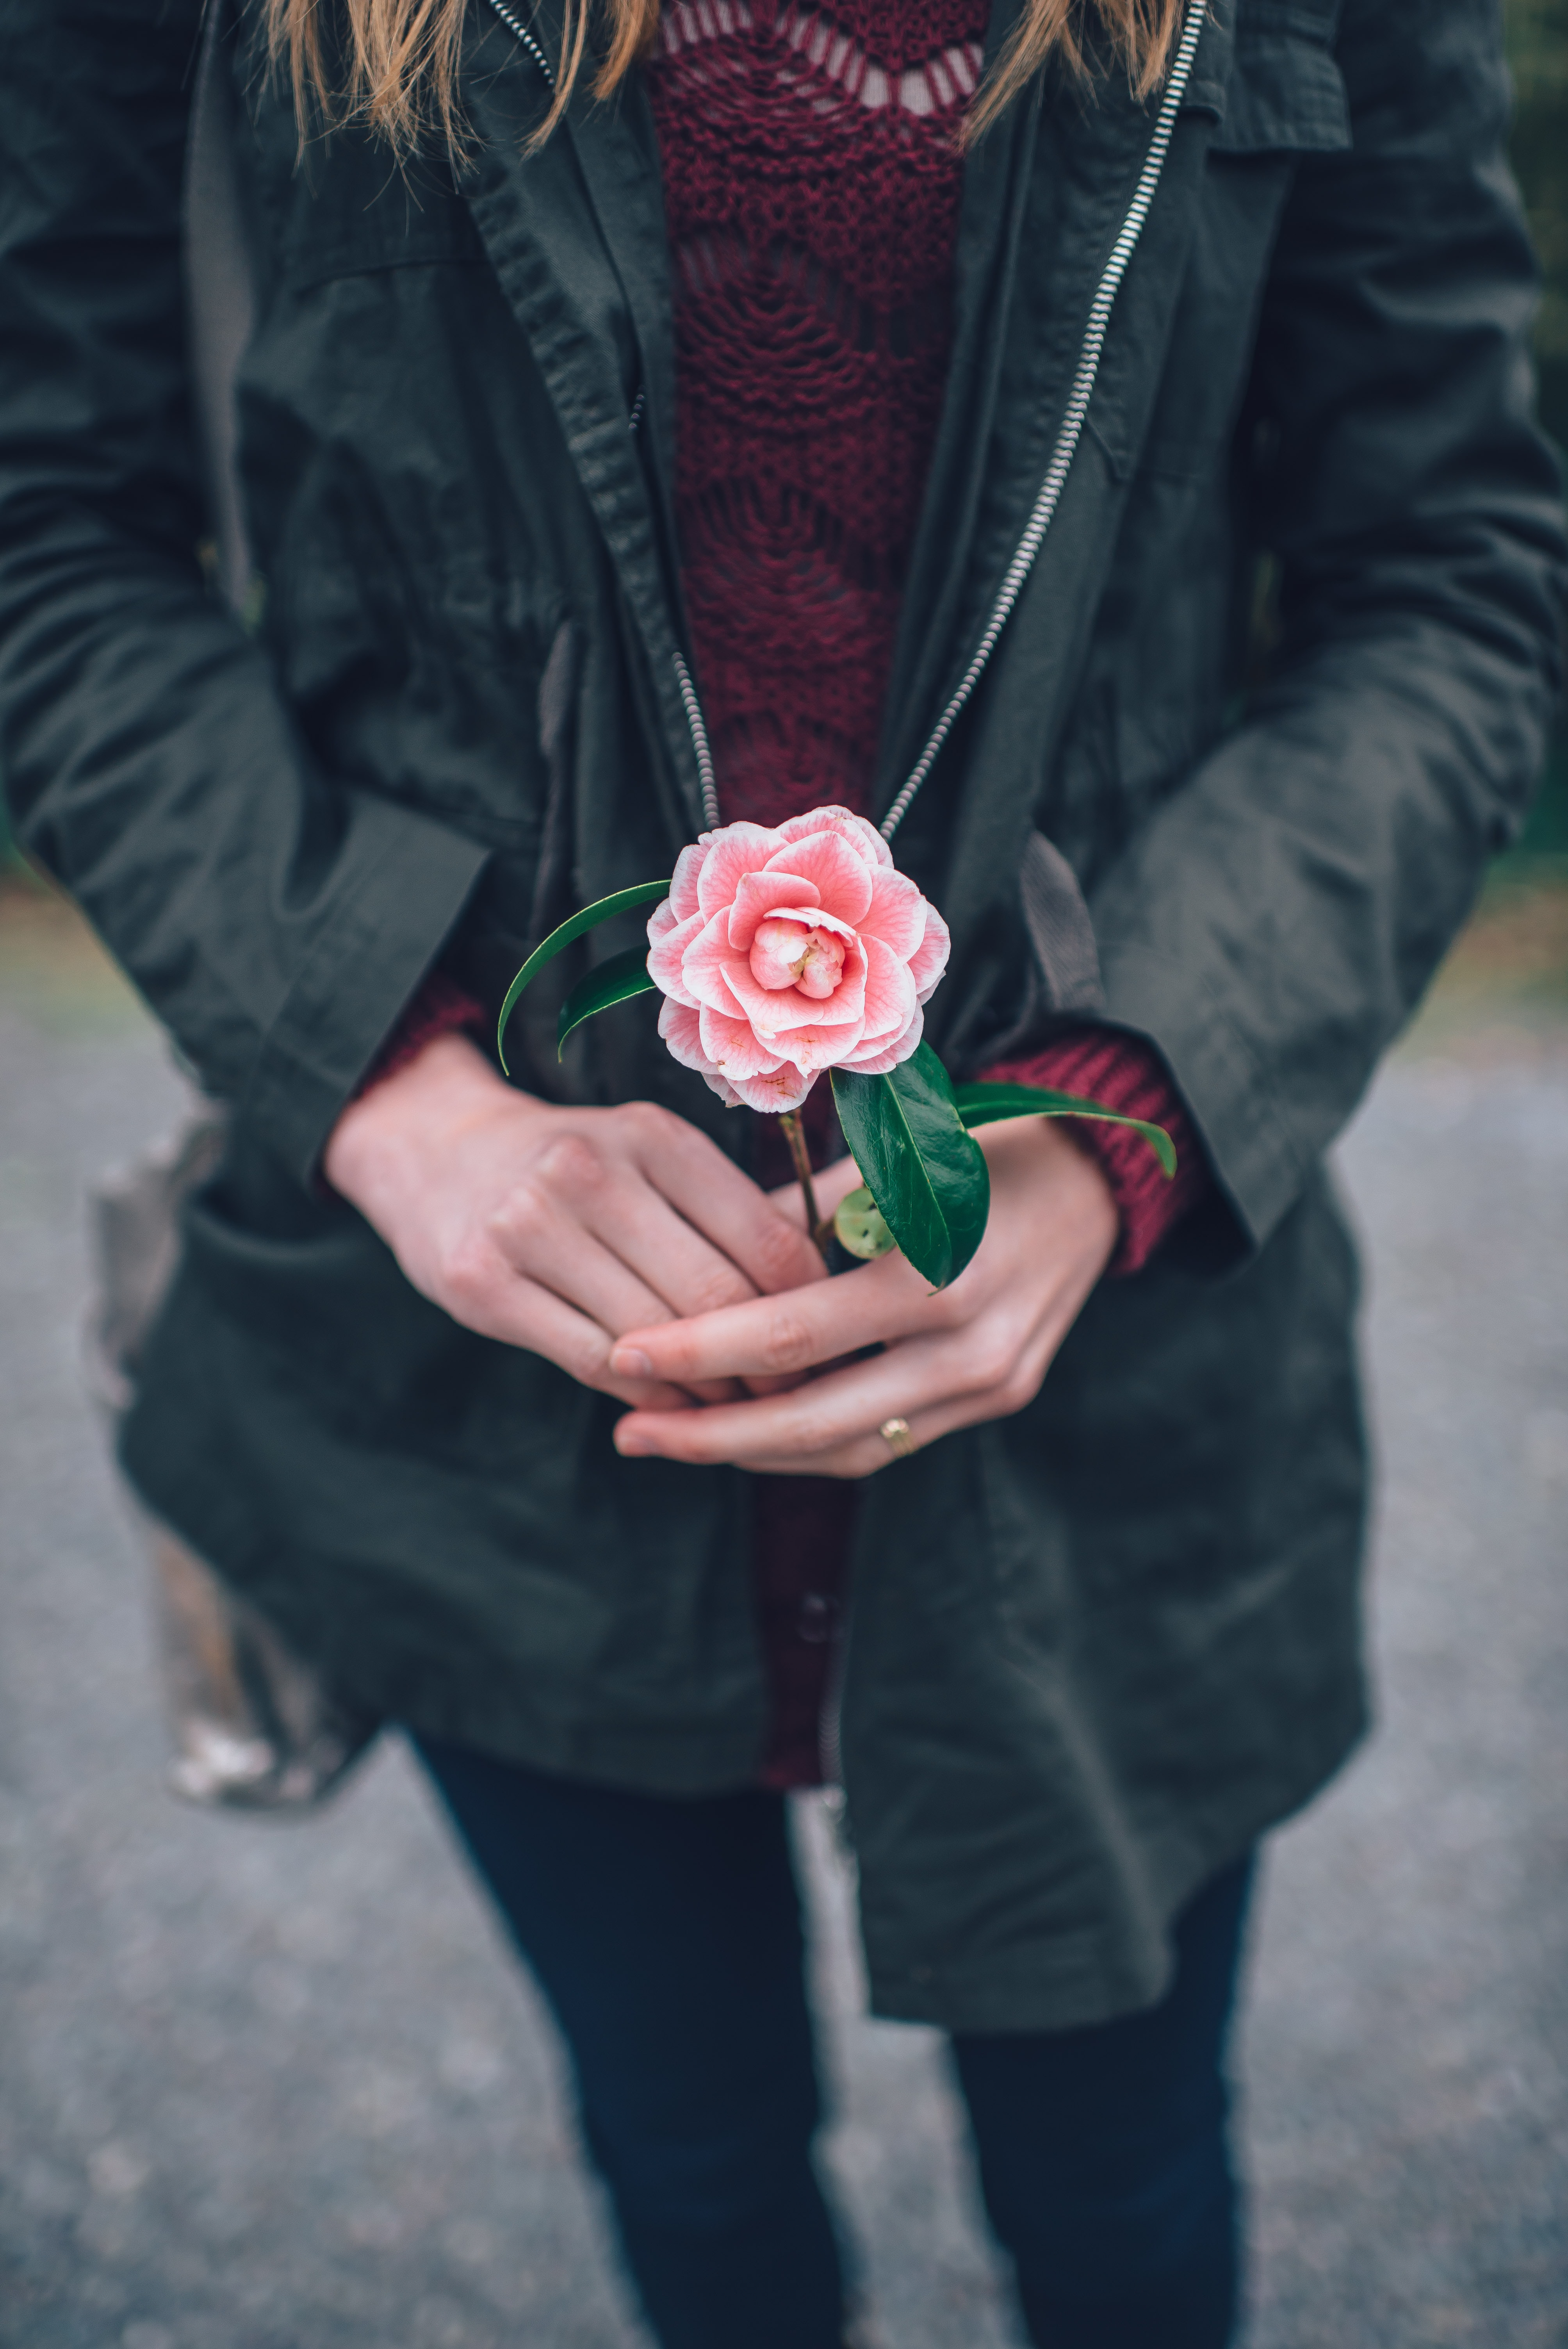 woman in black leather jacket holding pink flower during daytime